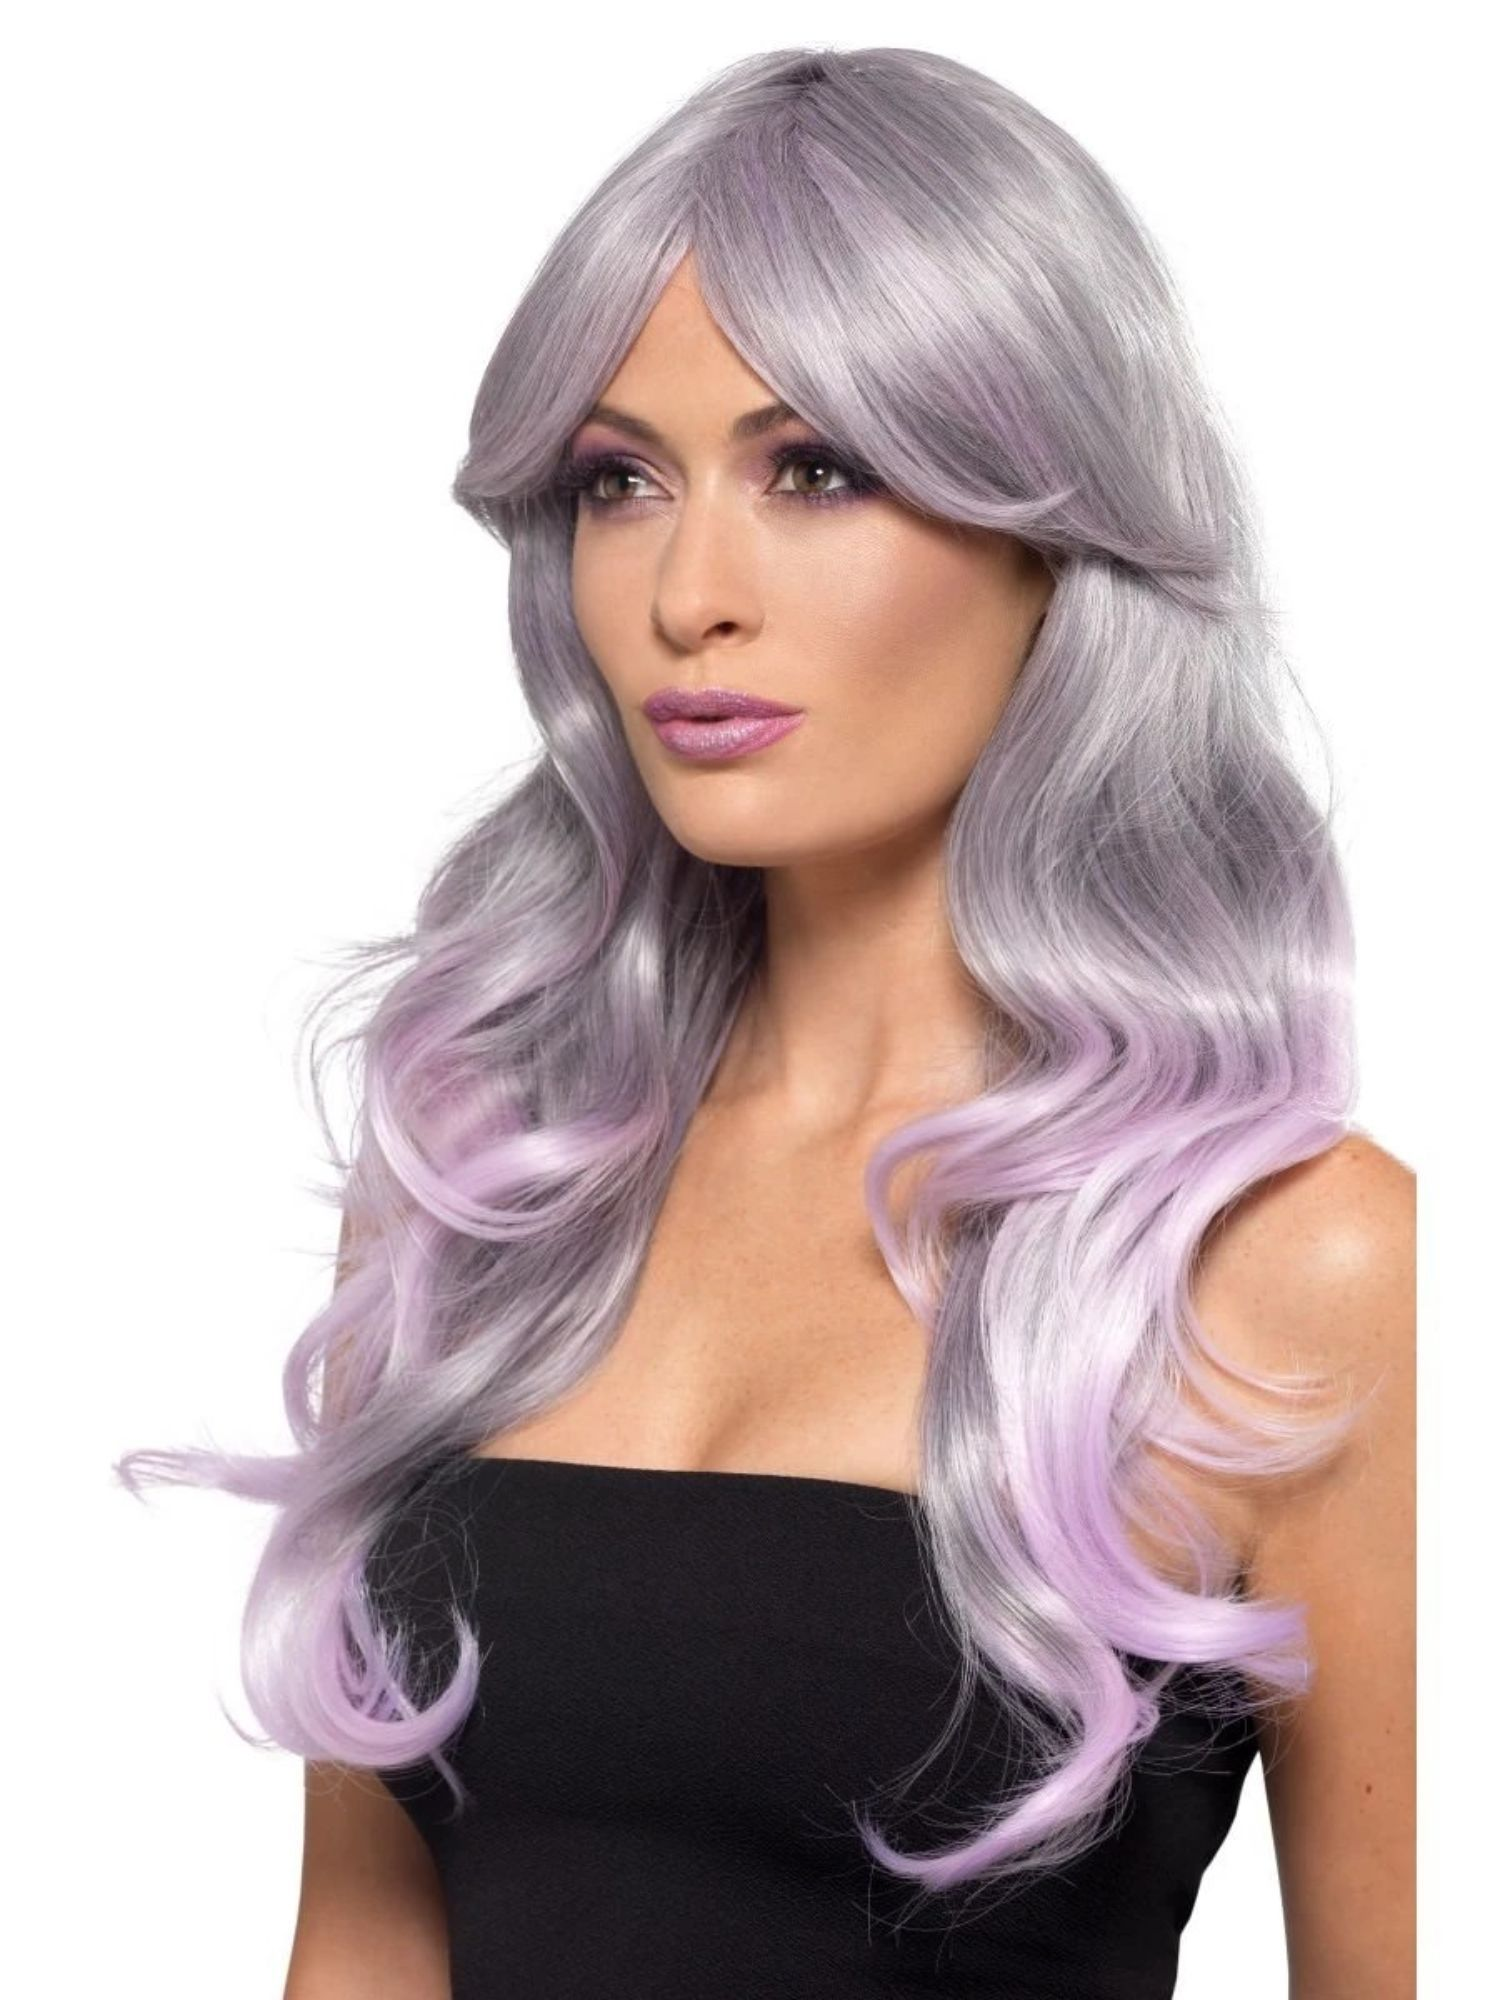 2021 New Lace Front Wigs Wig To Cover Grey Hair Neesha Wig Colors Affordable Quality Wigs